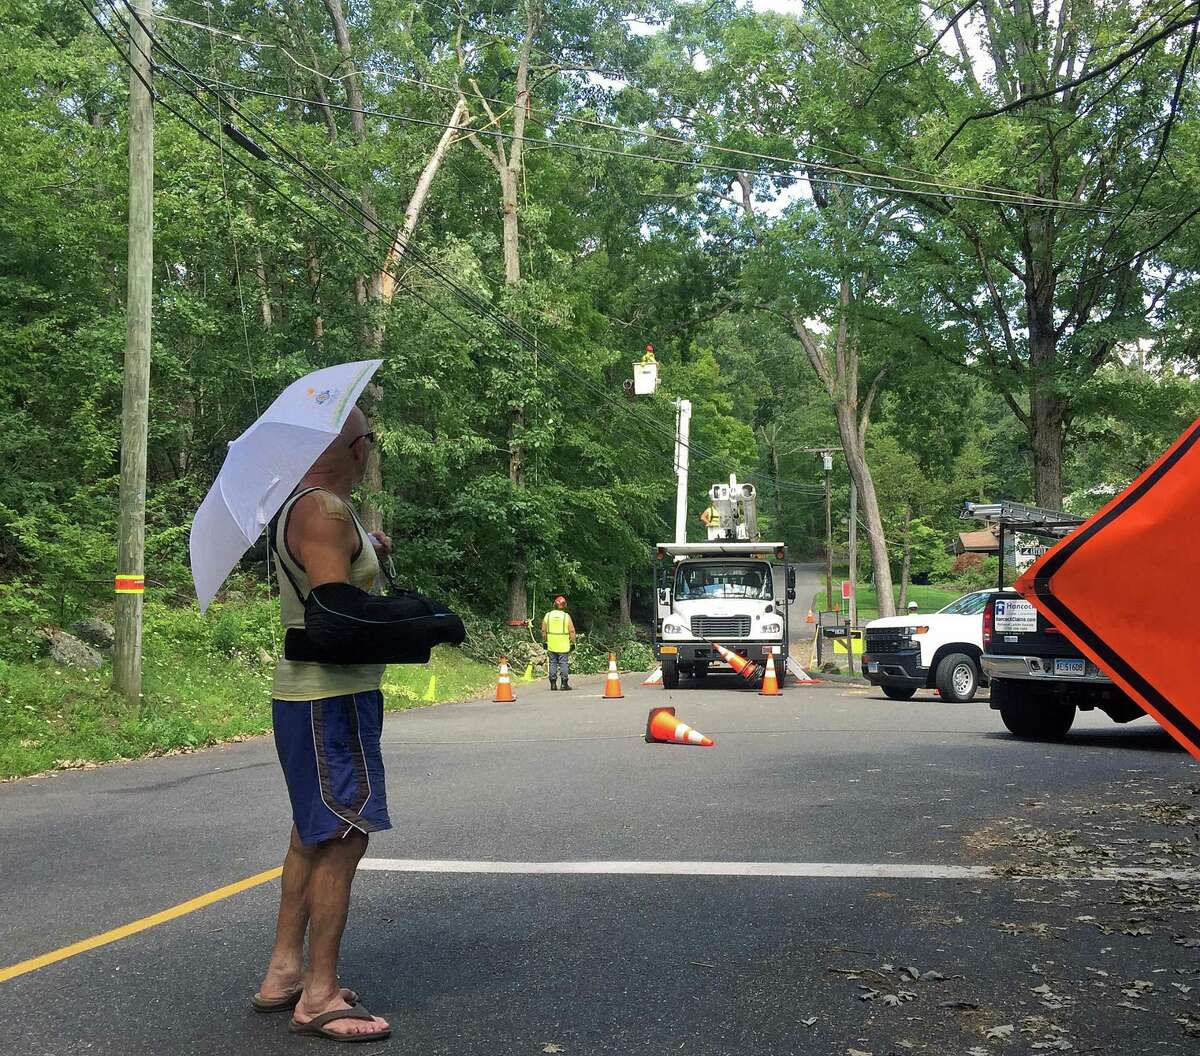 Bo Detch, a resident of Danbury's Lake Waubeeka community who was without power for eight days, watches line workers restoring power on Wednesday Aug. 12, 2020.